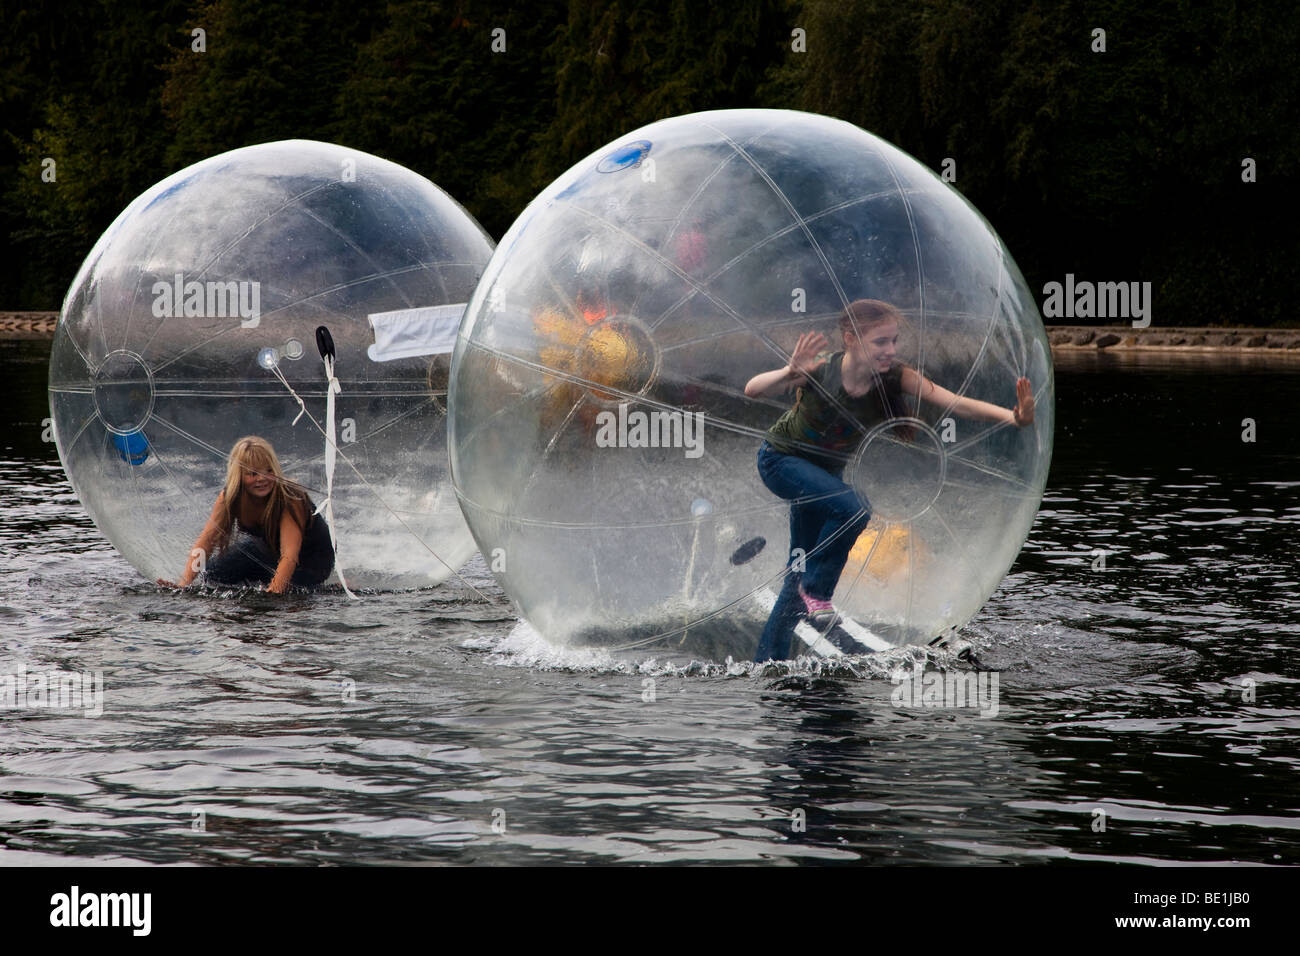 Two young girls playing inside a bubblerunner across the public lake at Rouken Glen park, Glasgow, UK, Scotland - Stock Image